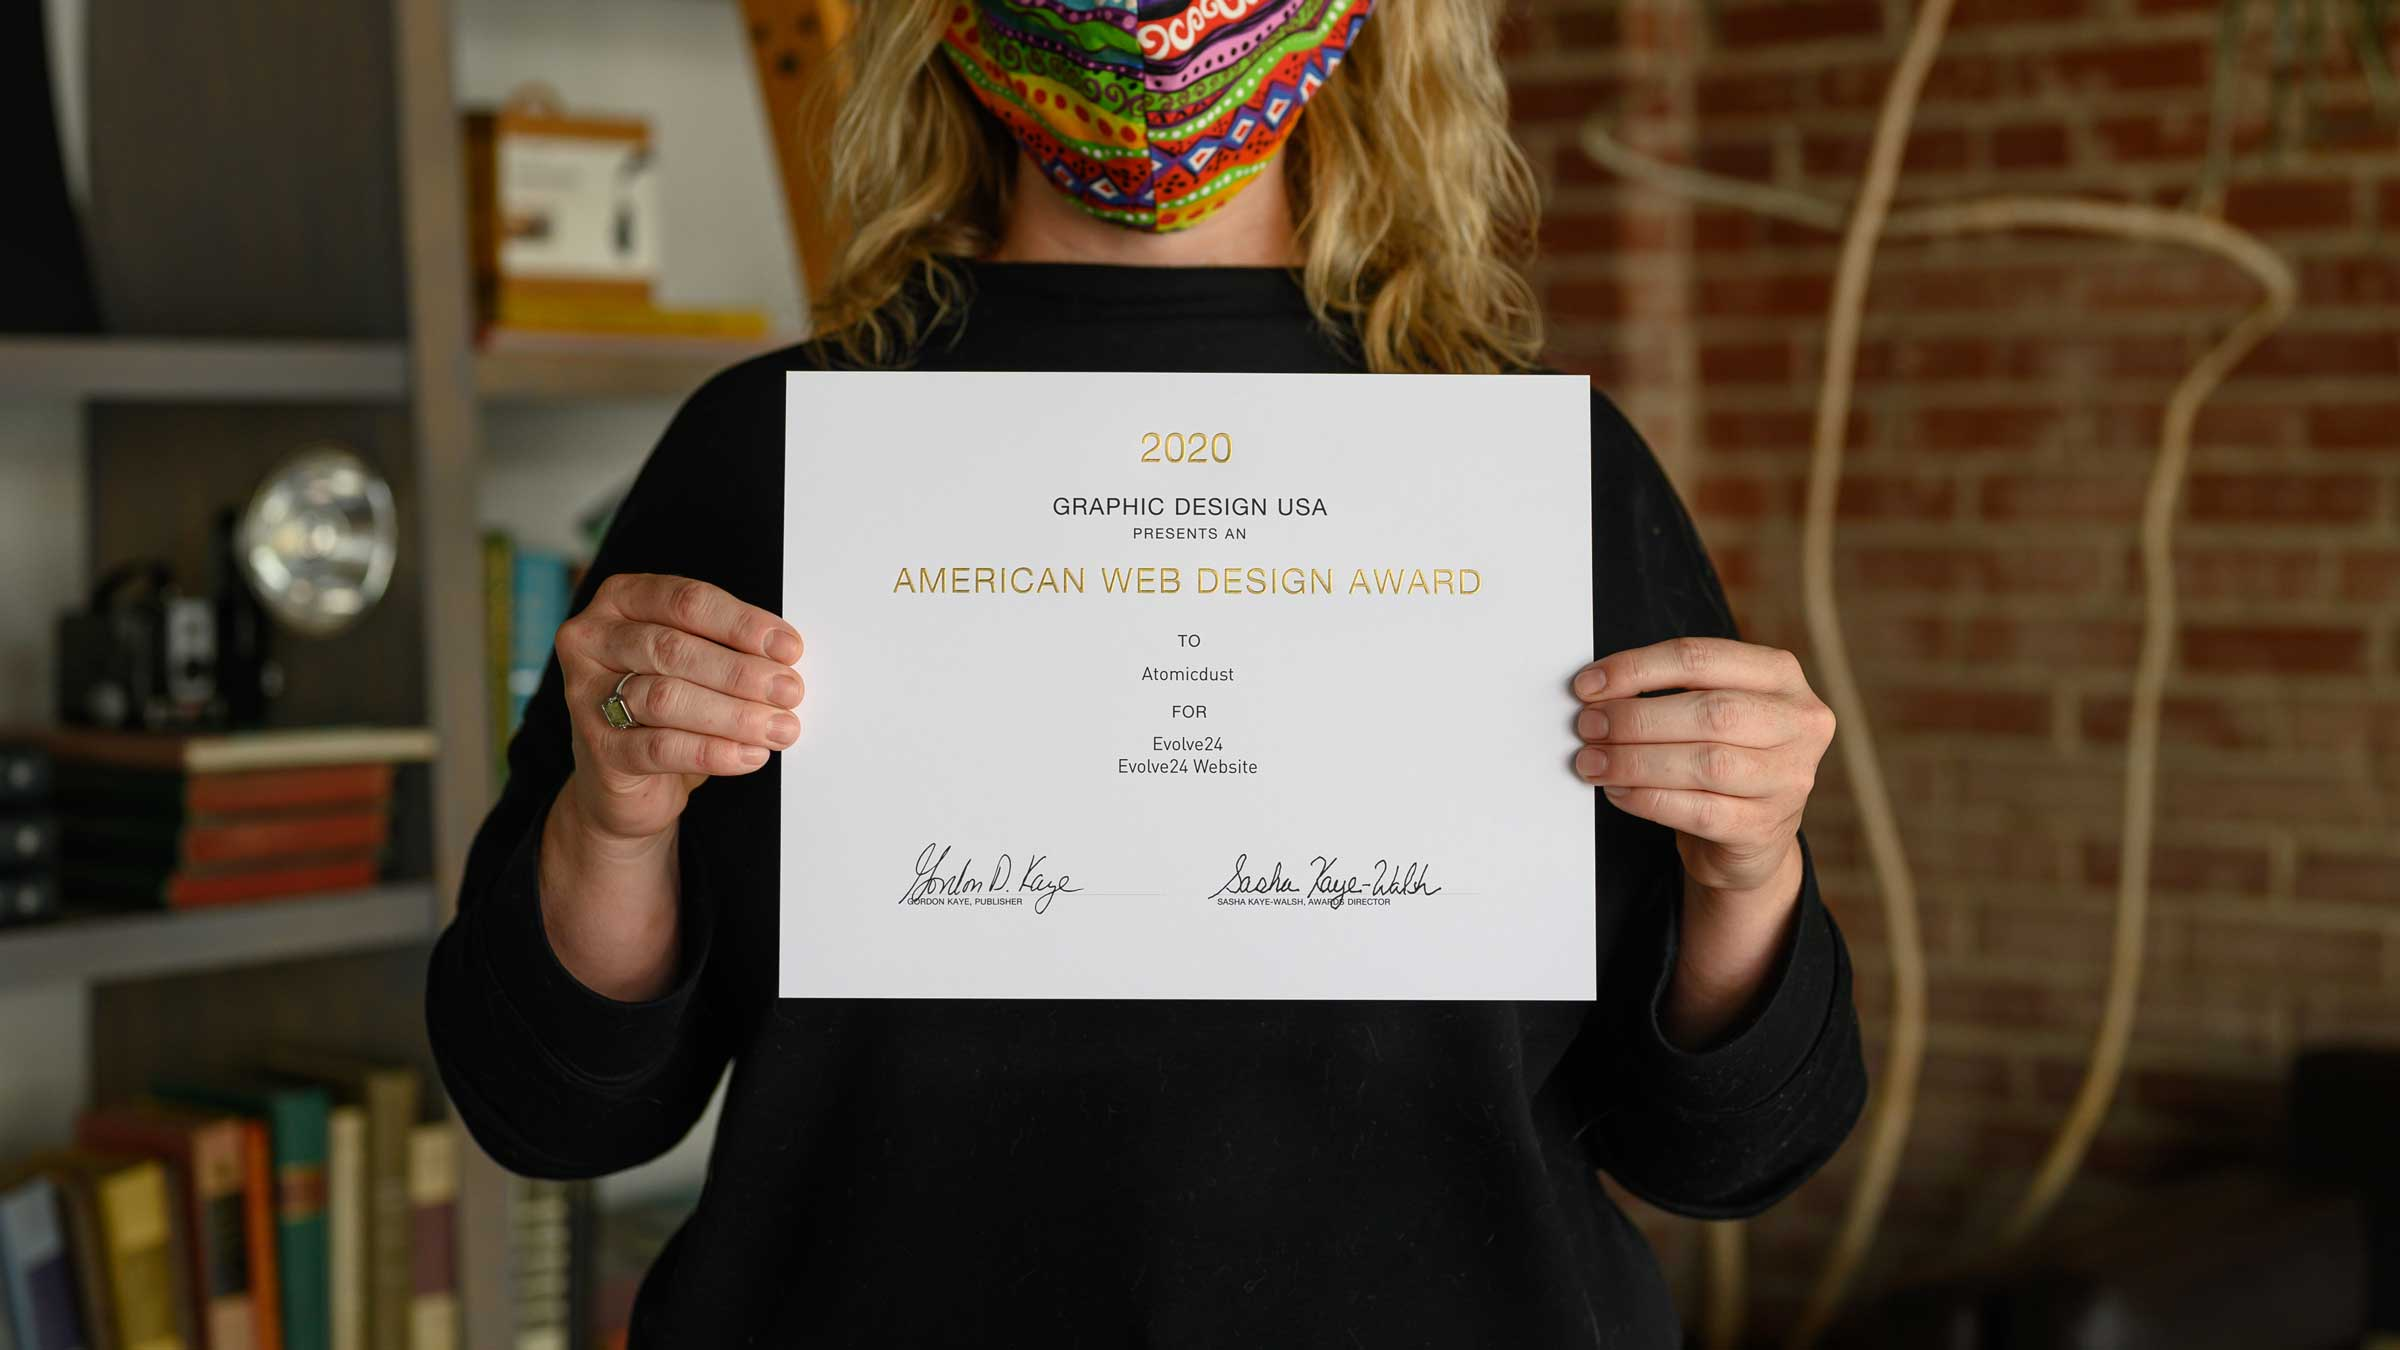 An Atomicdust team member holds a certificate from GDUSA's 2020 American Web Design Awards